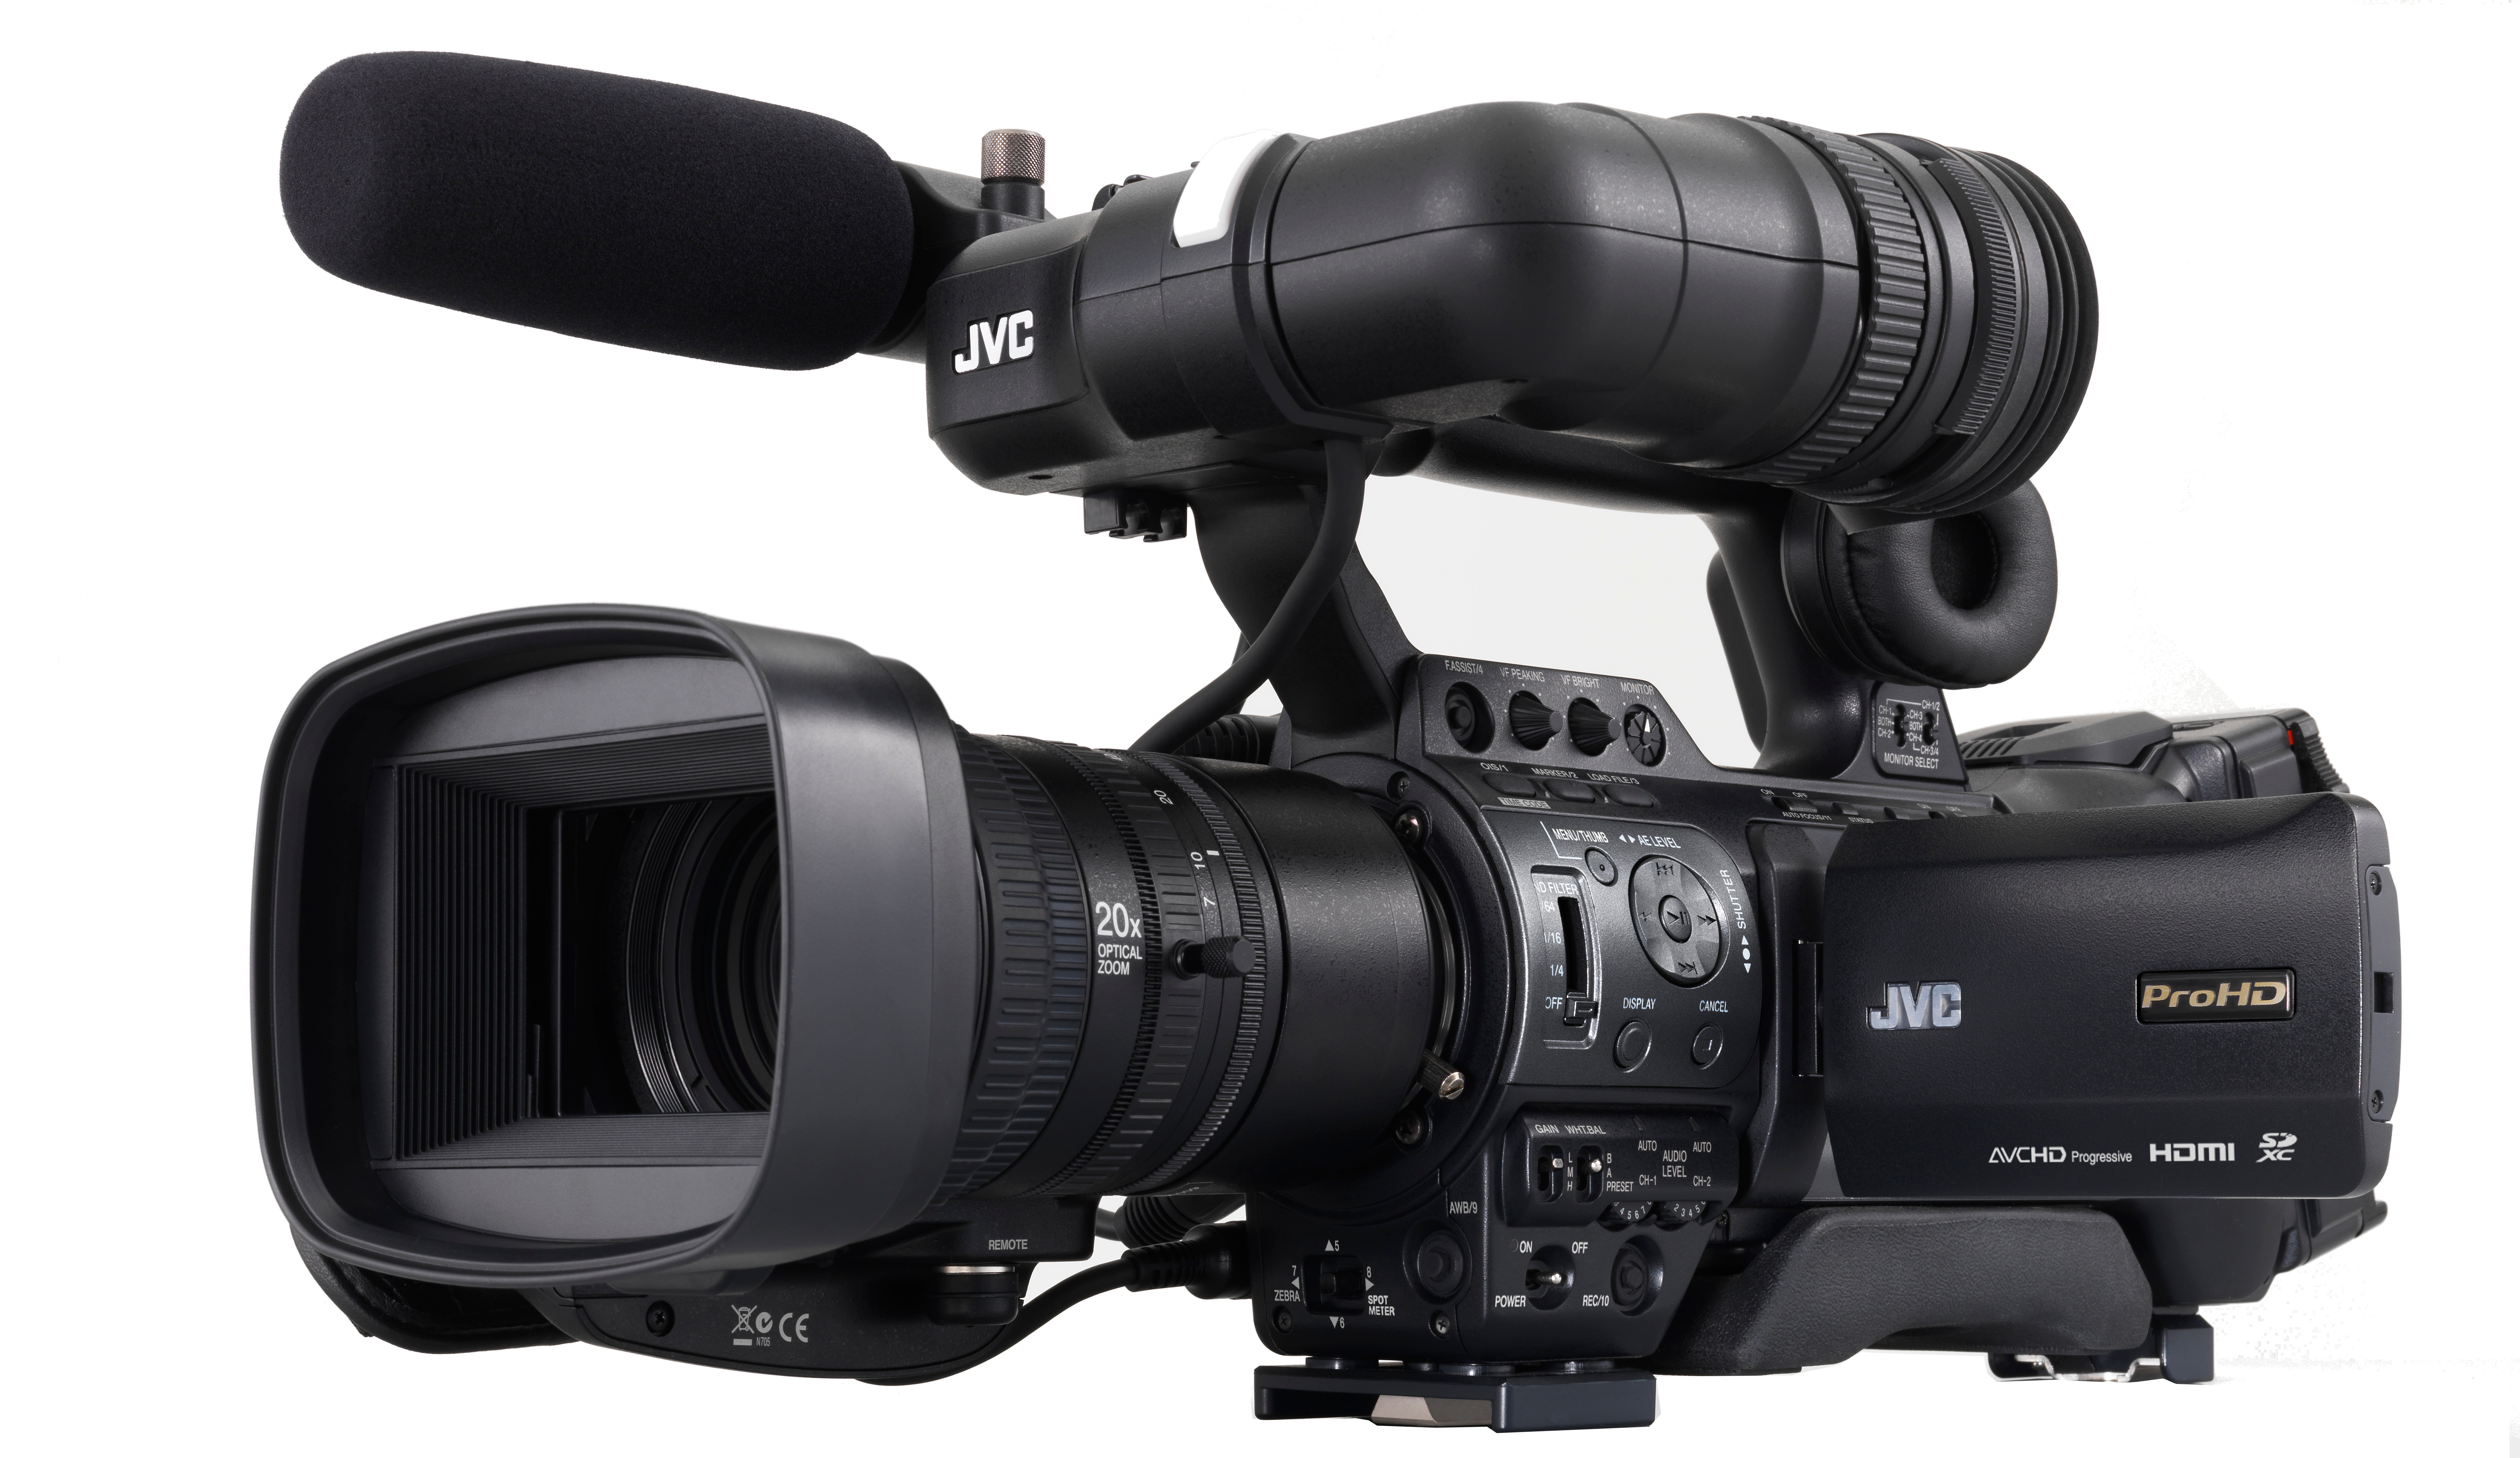 Jvc news release glad tidings church upgrades to full hd for Camera camera camera